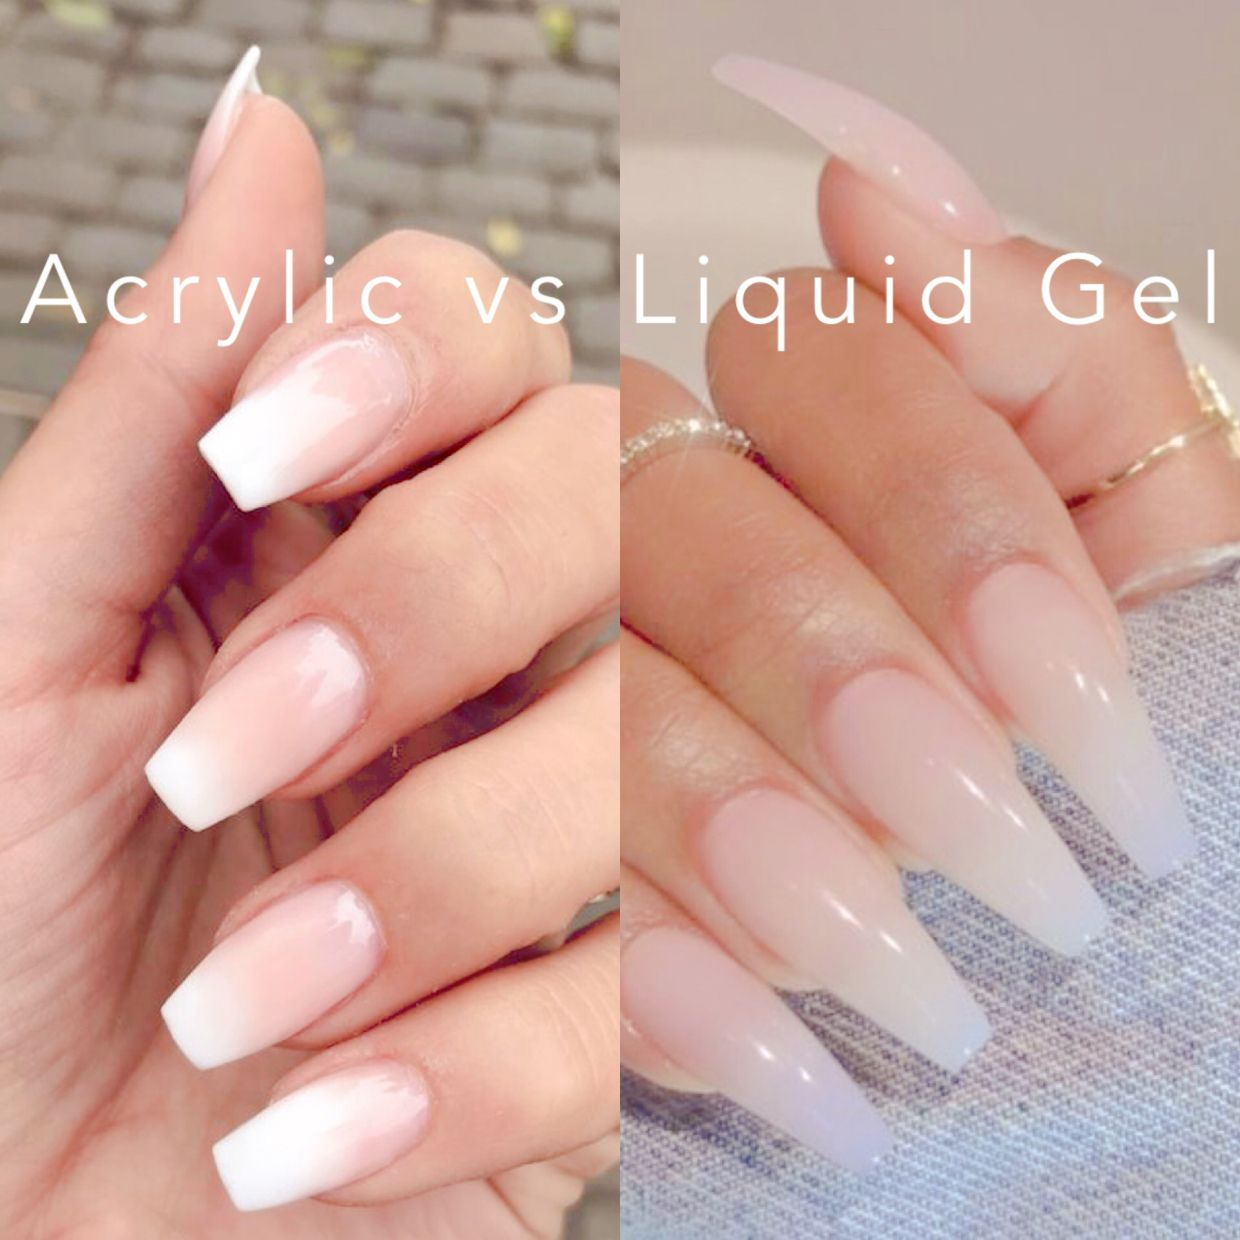 Acrylic Nails Vs Liquid Hard Gel Hard Gel Nails Liquid Gel Nails Gel Powder Nails